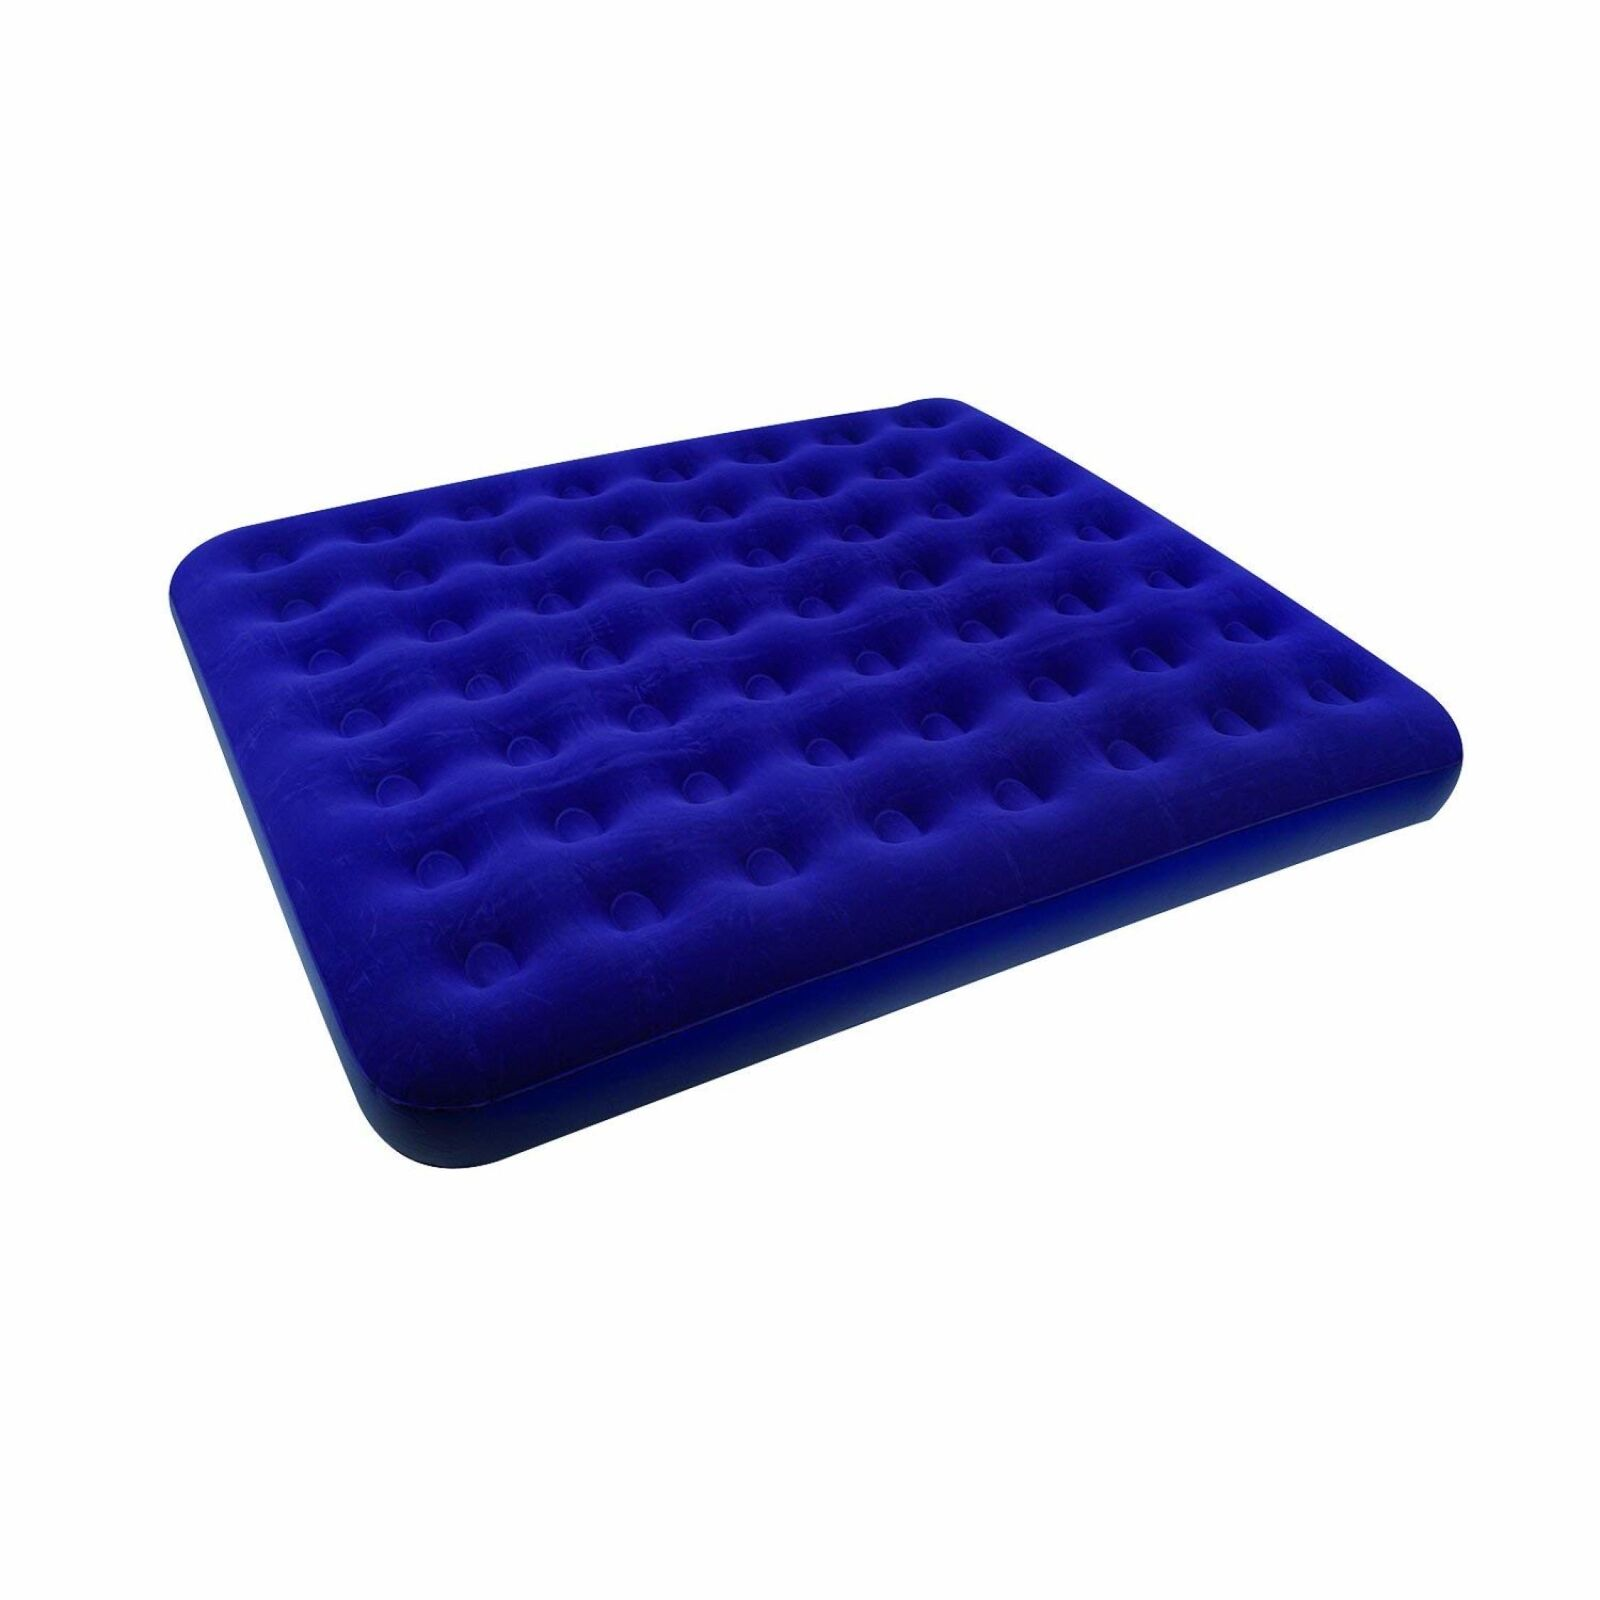 King Size Air Bed Camping Details About Stansport Air Bed King Size Blue Mattresses Airbed Camping Outdoor